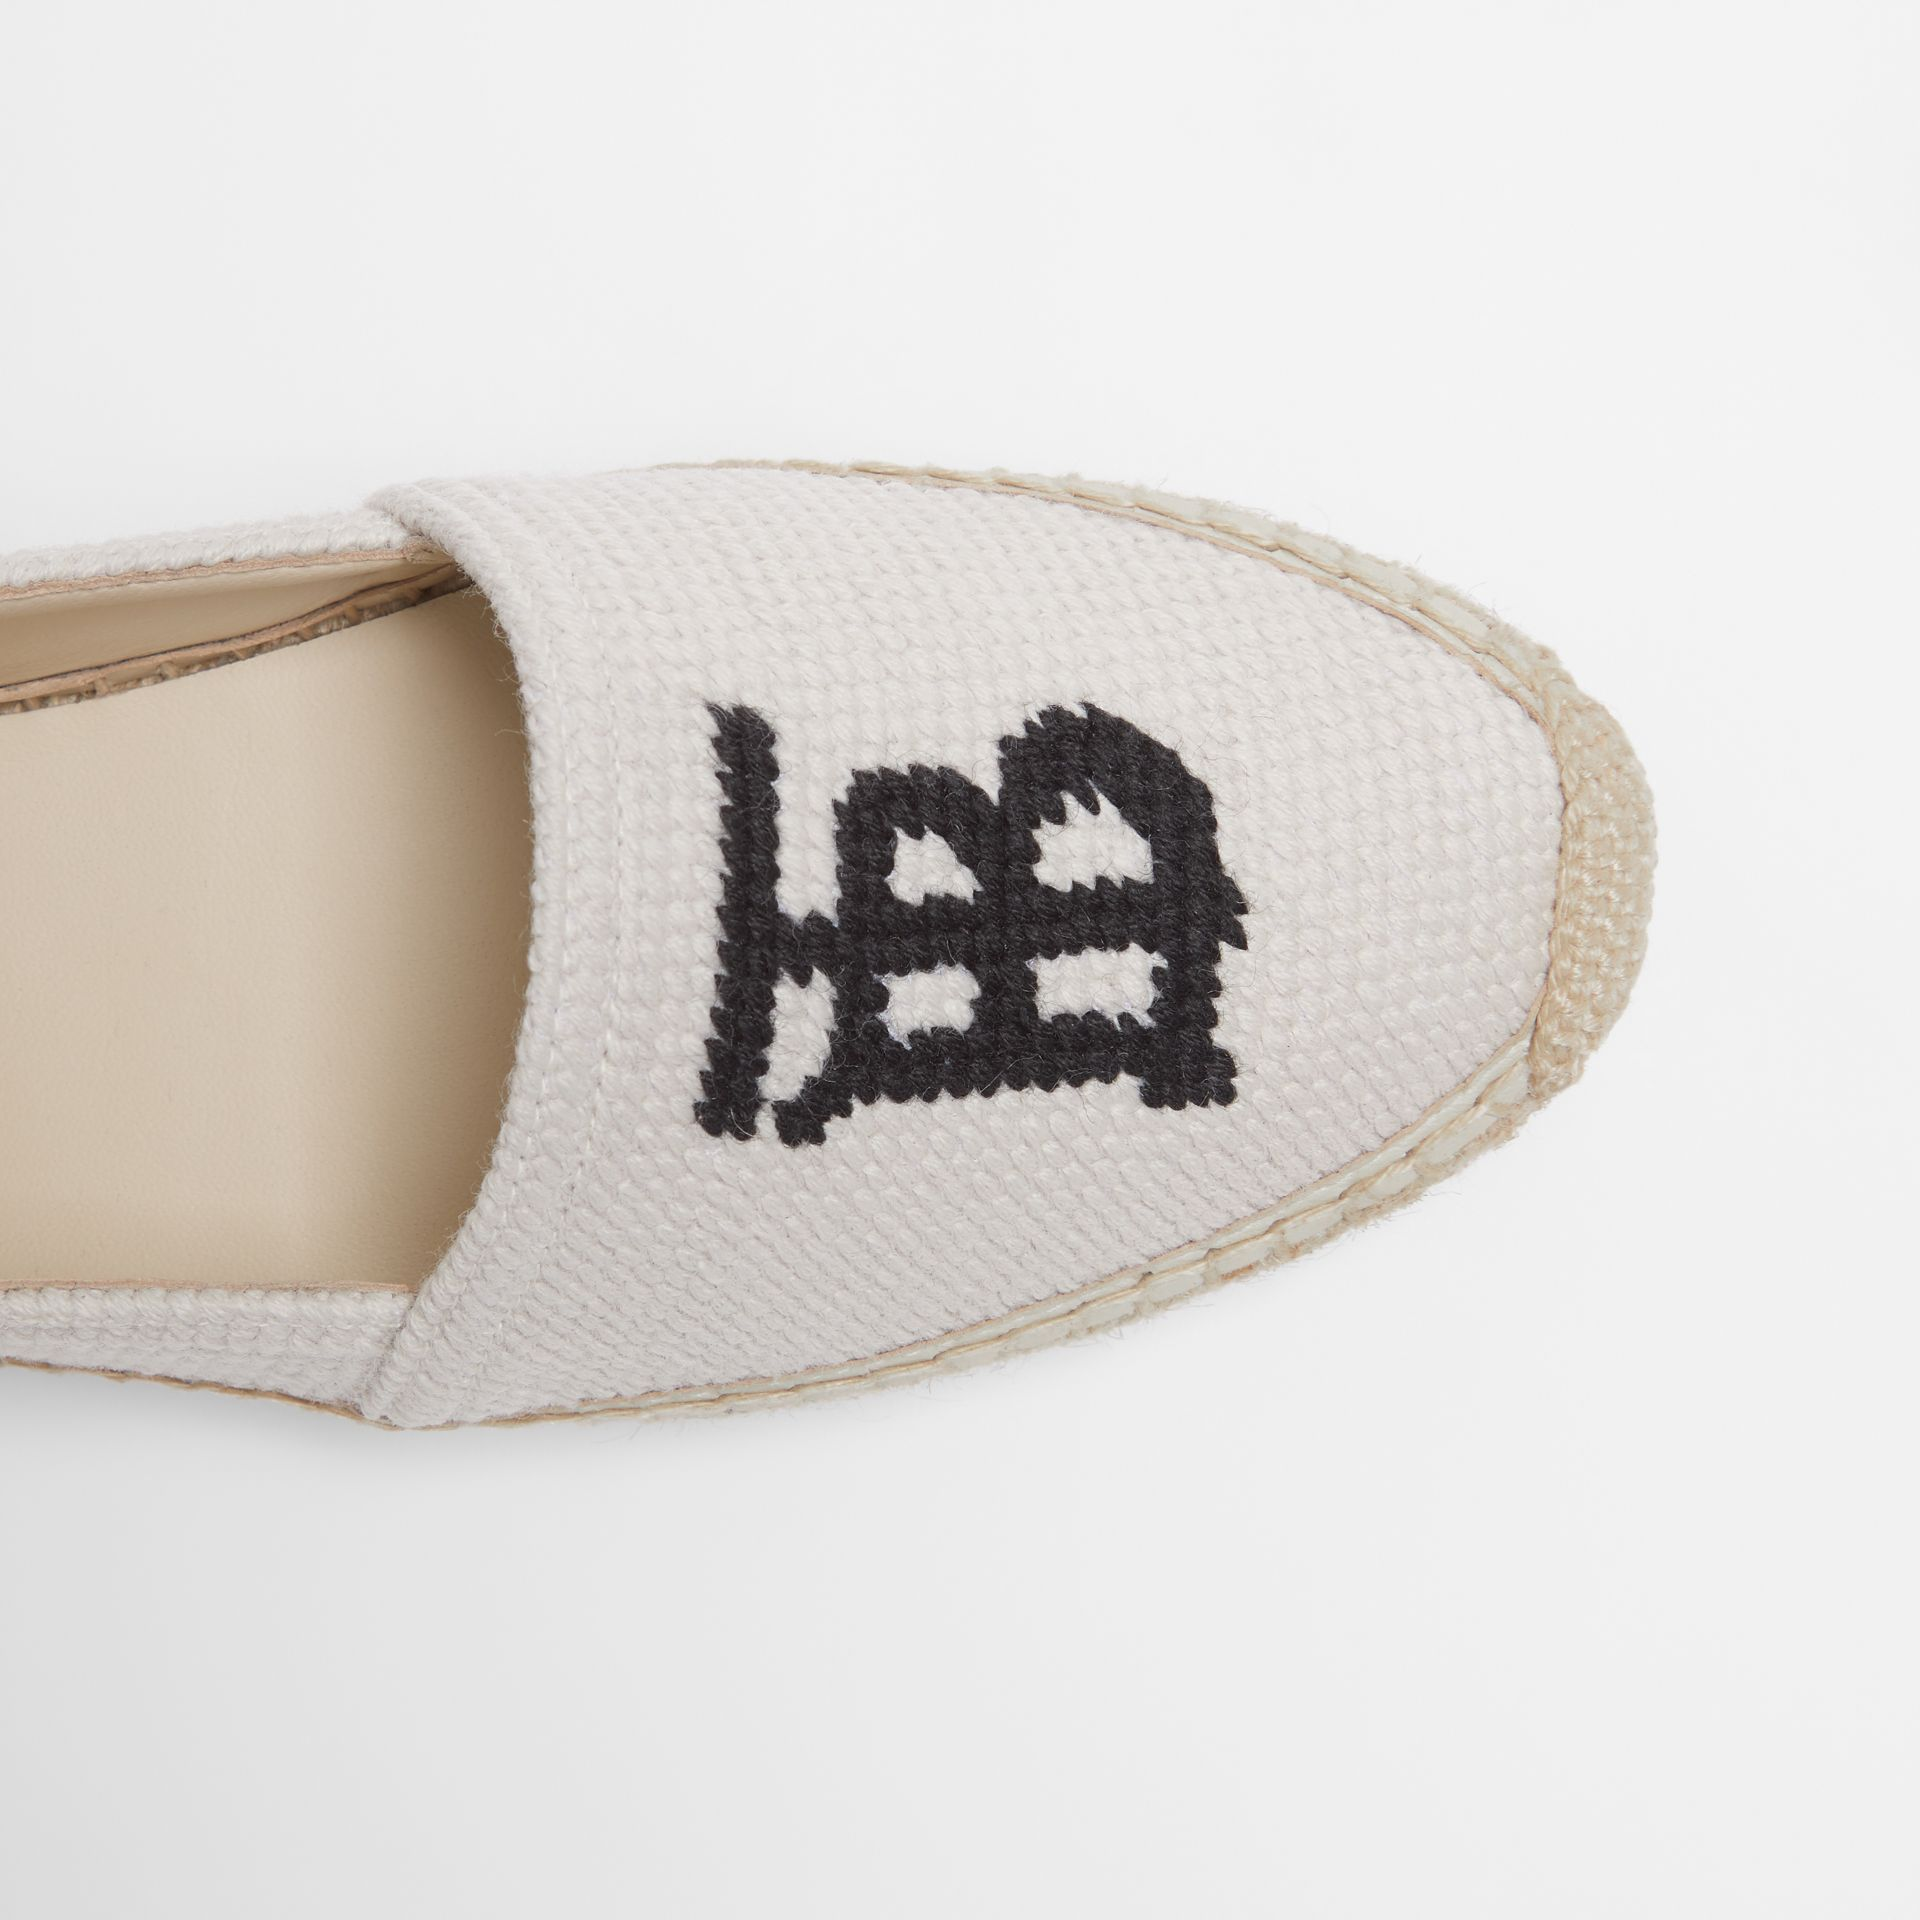 Monogram Motif Cotton and Leather Espadrilles in Ecru/black - Women | Burberry United States - gallery image 1